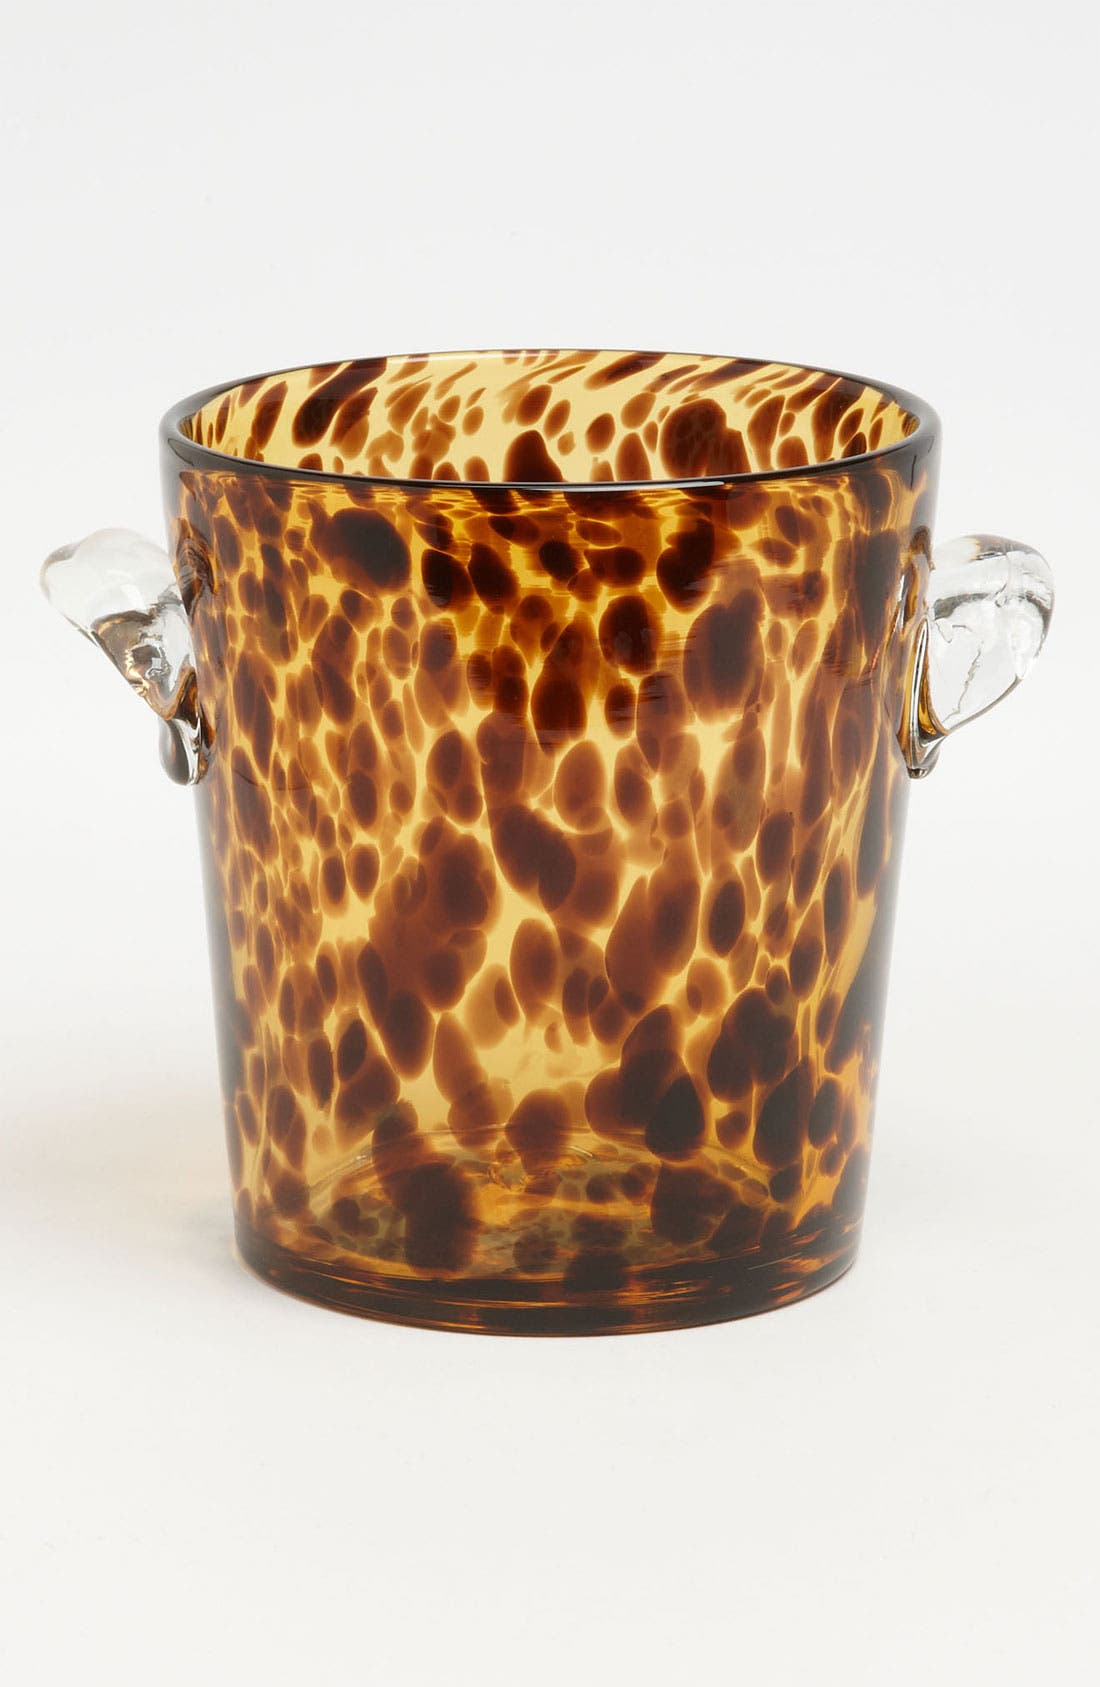 Main Image - Tortoiseshell Ice Bucket